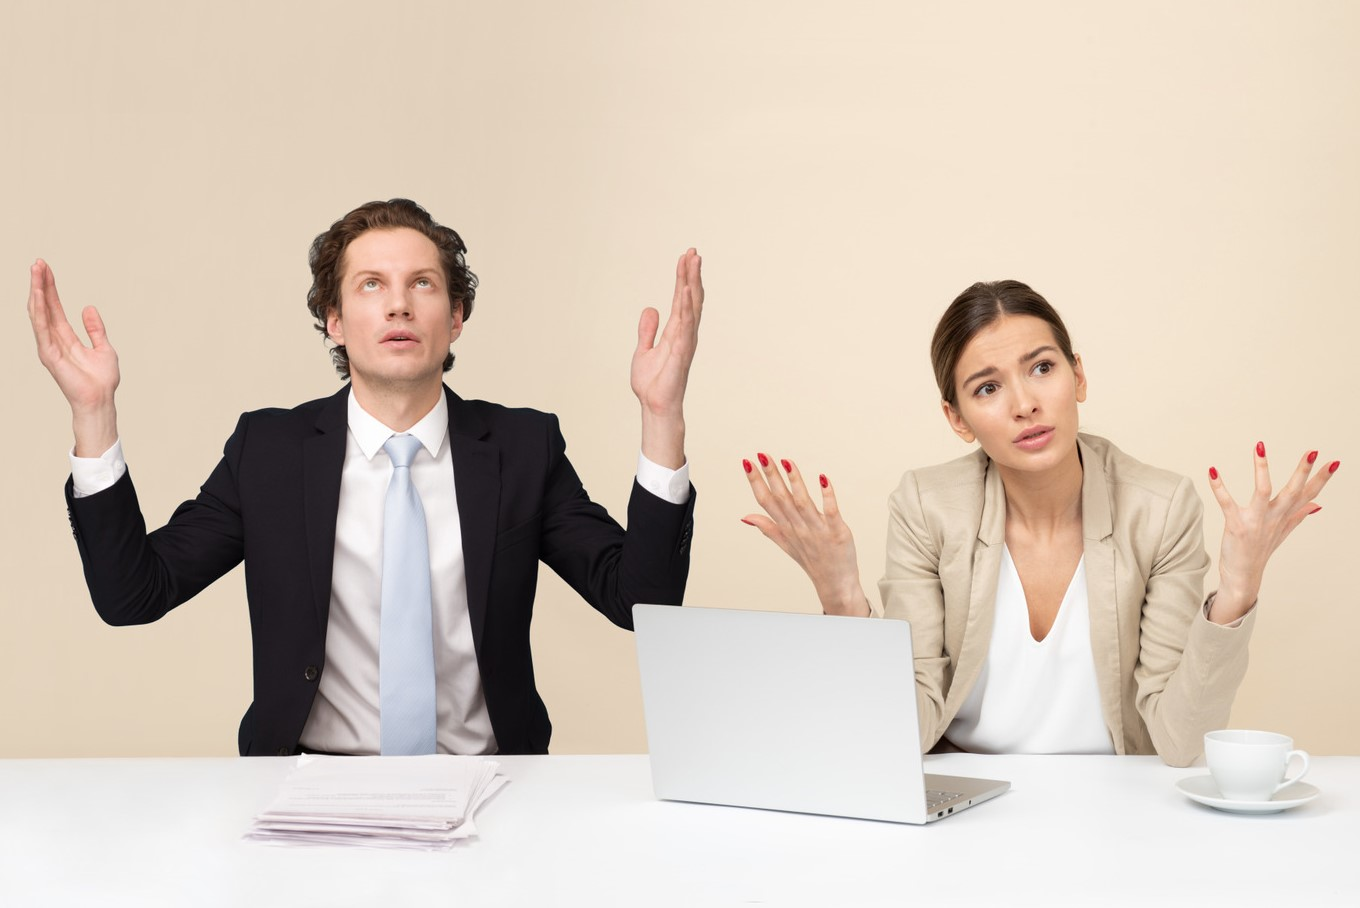 3 Ways to Tell If an Employer Has Competent Management Skills During an Interview